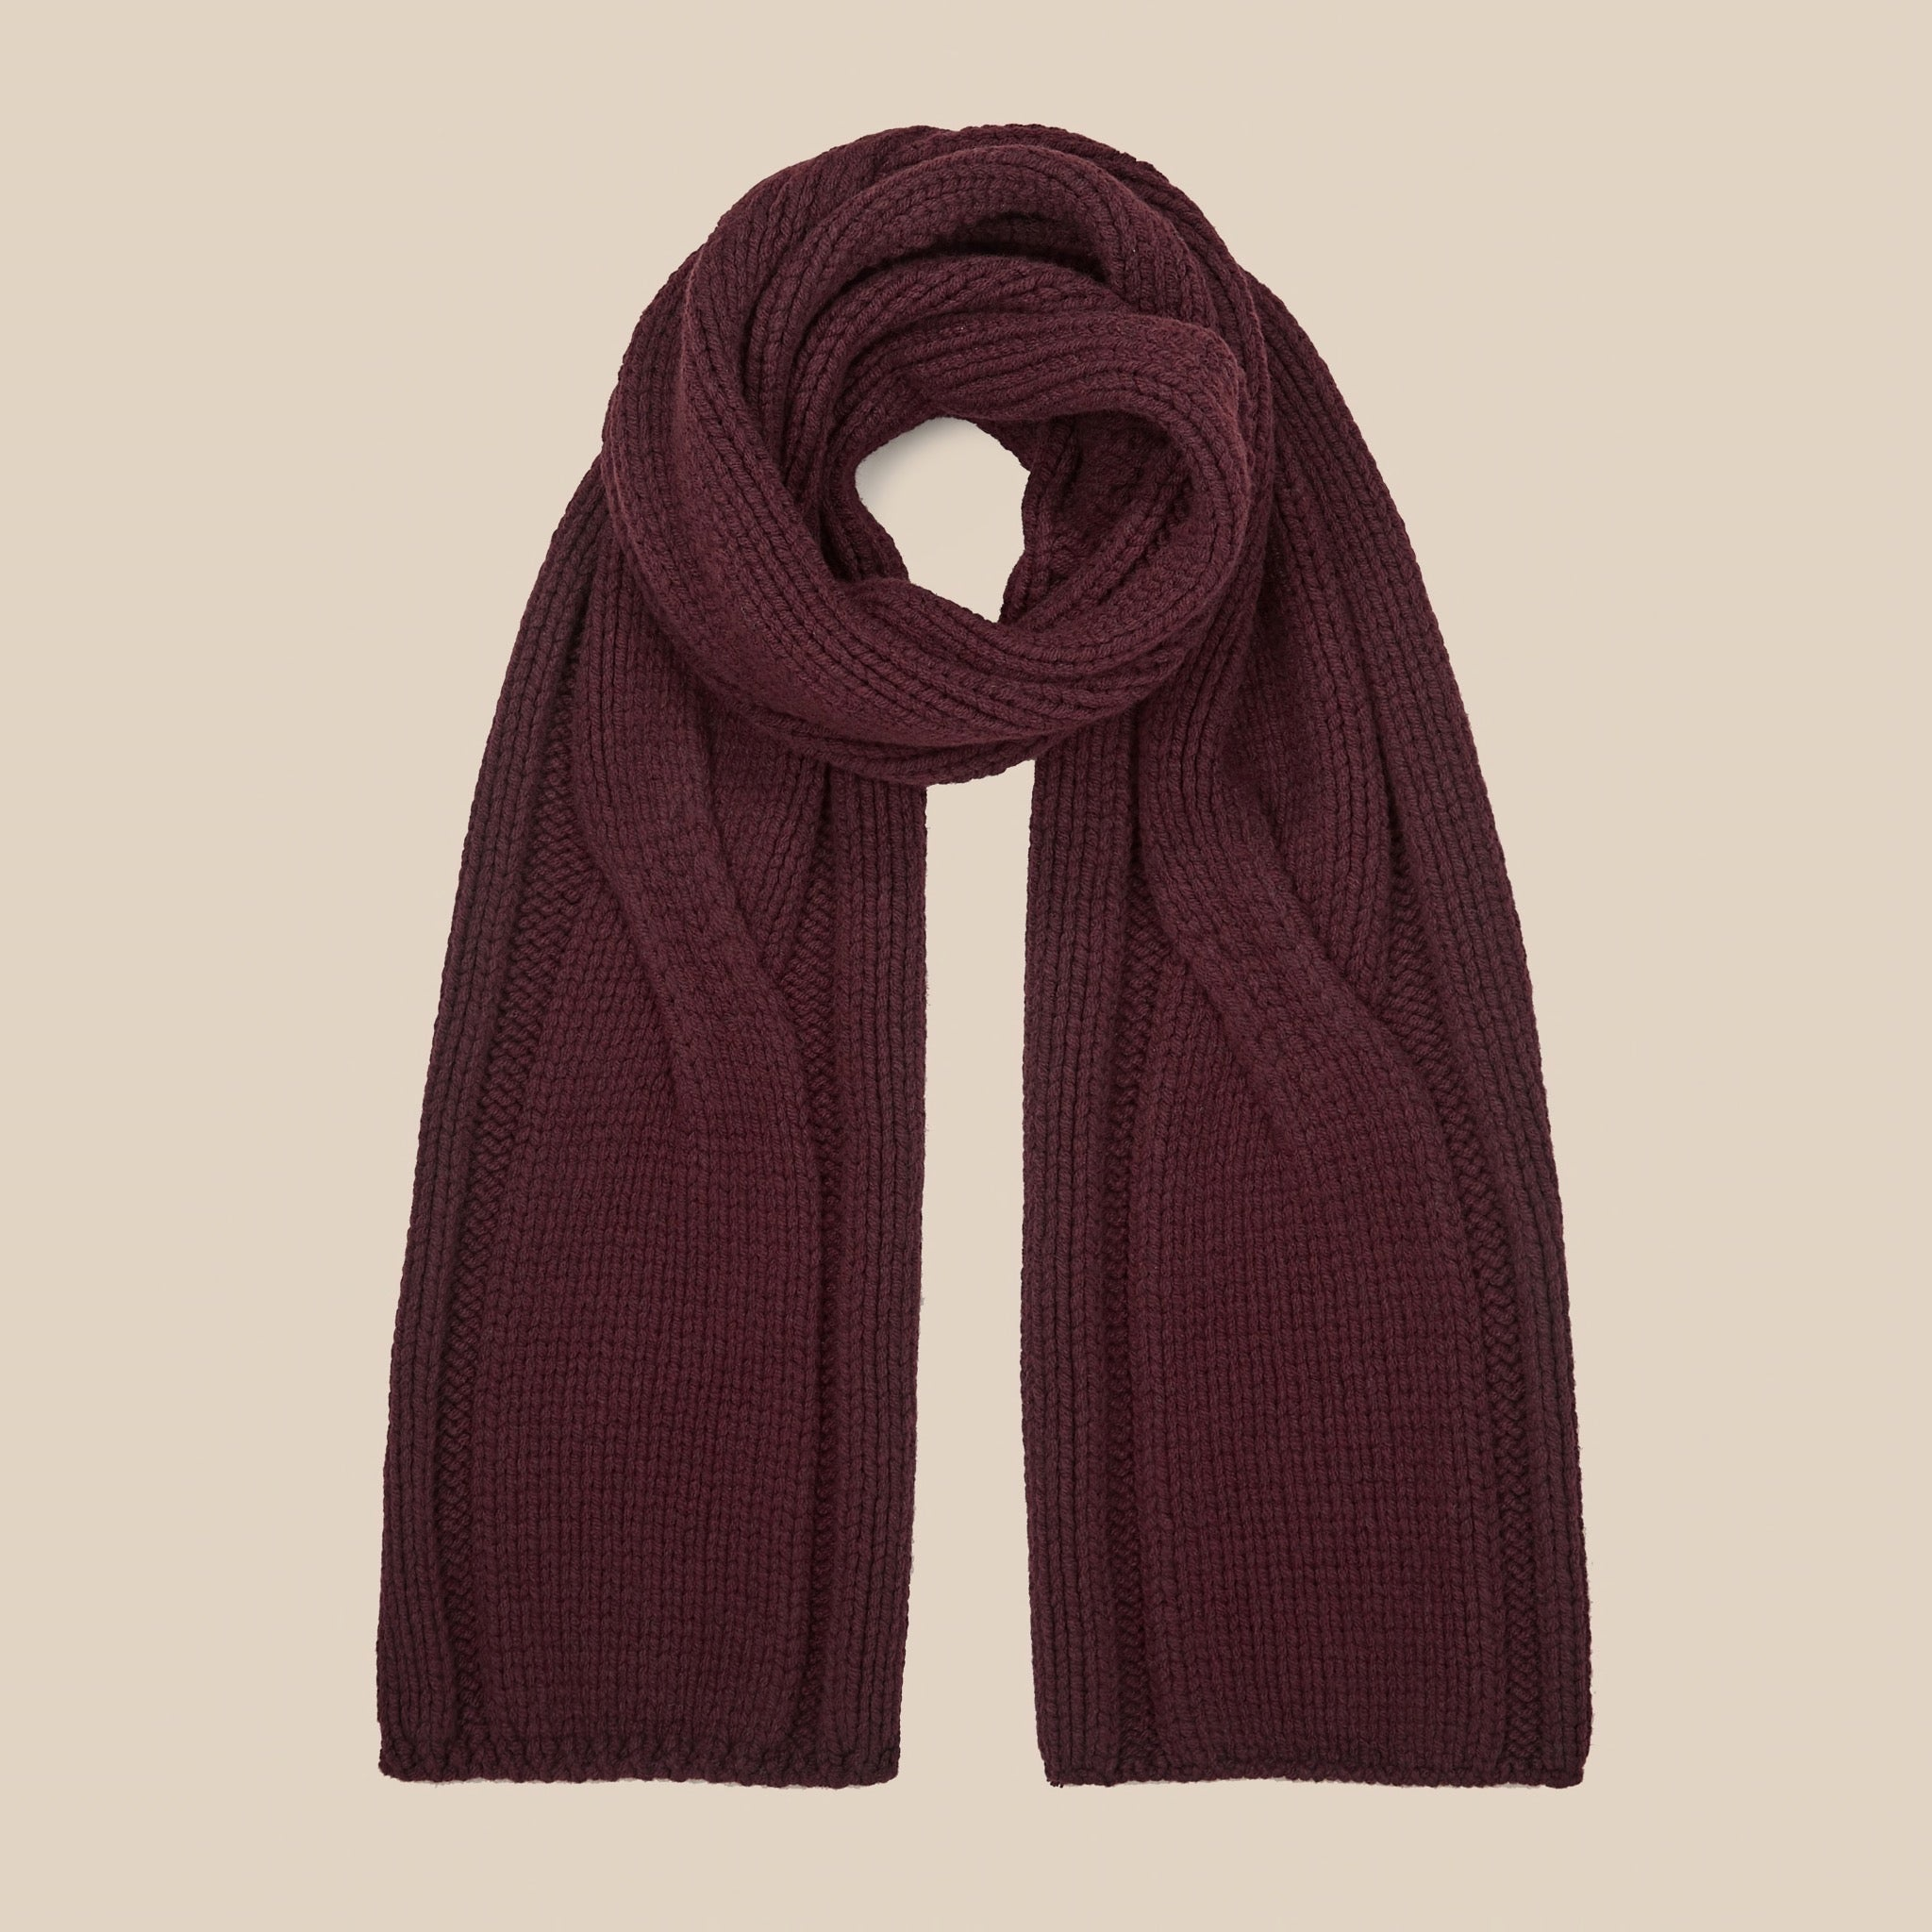 Lambswool scarf in burgundy